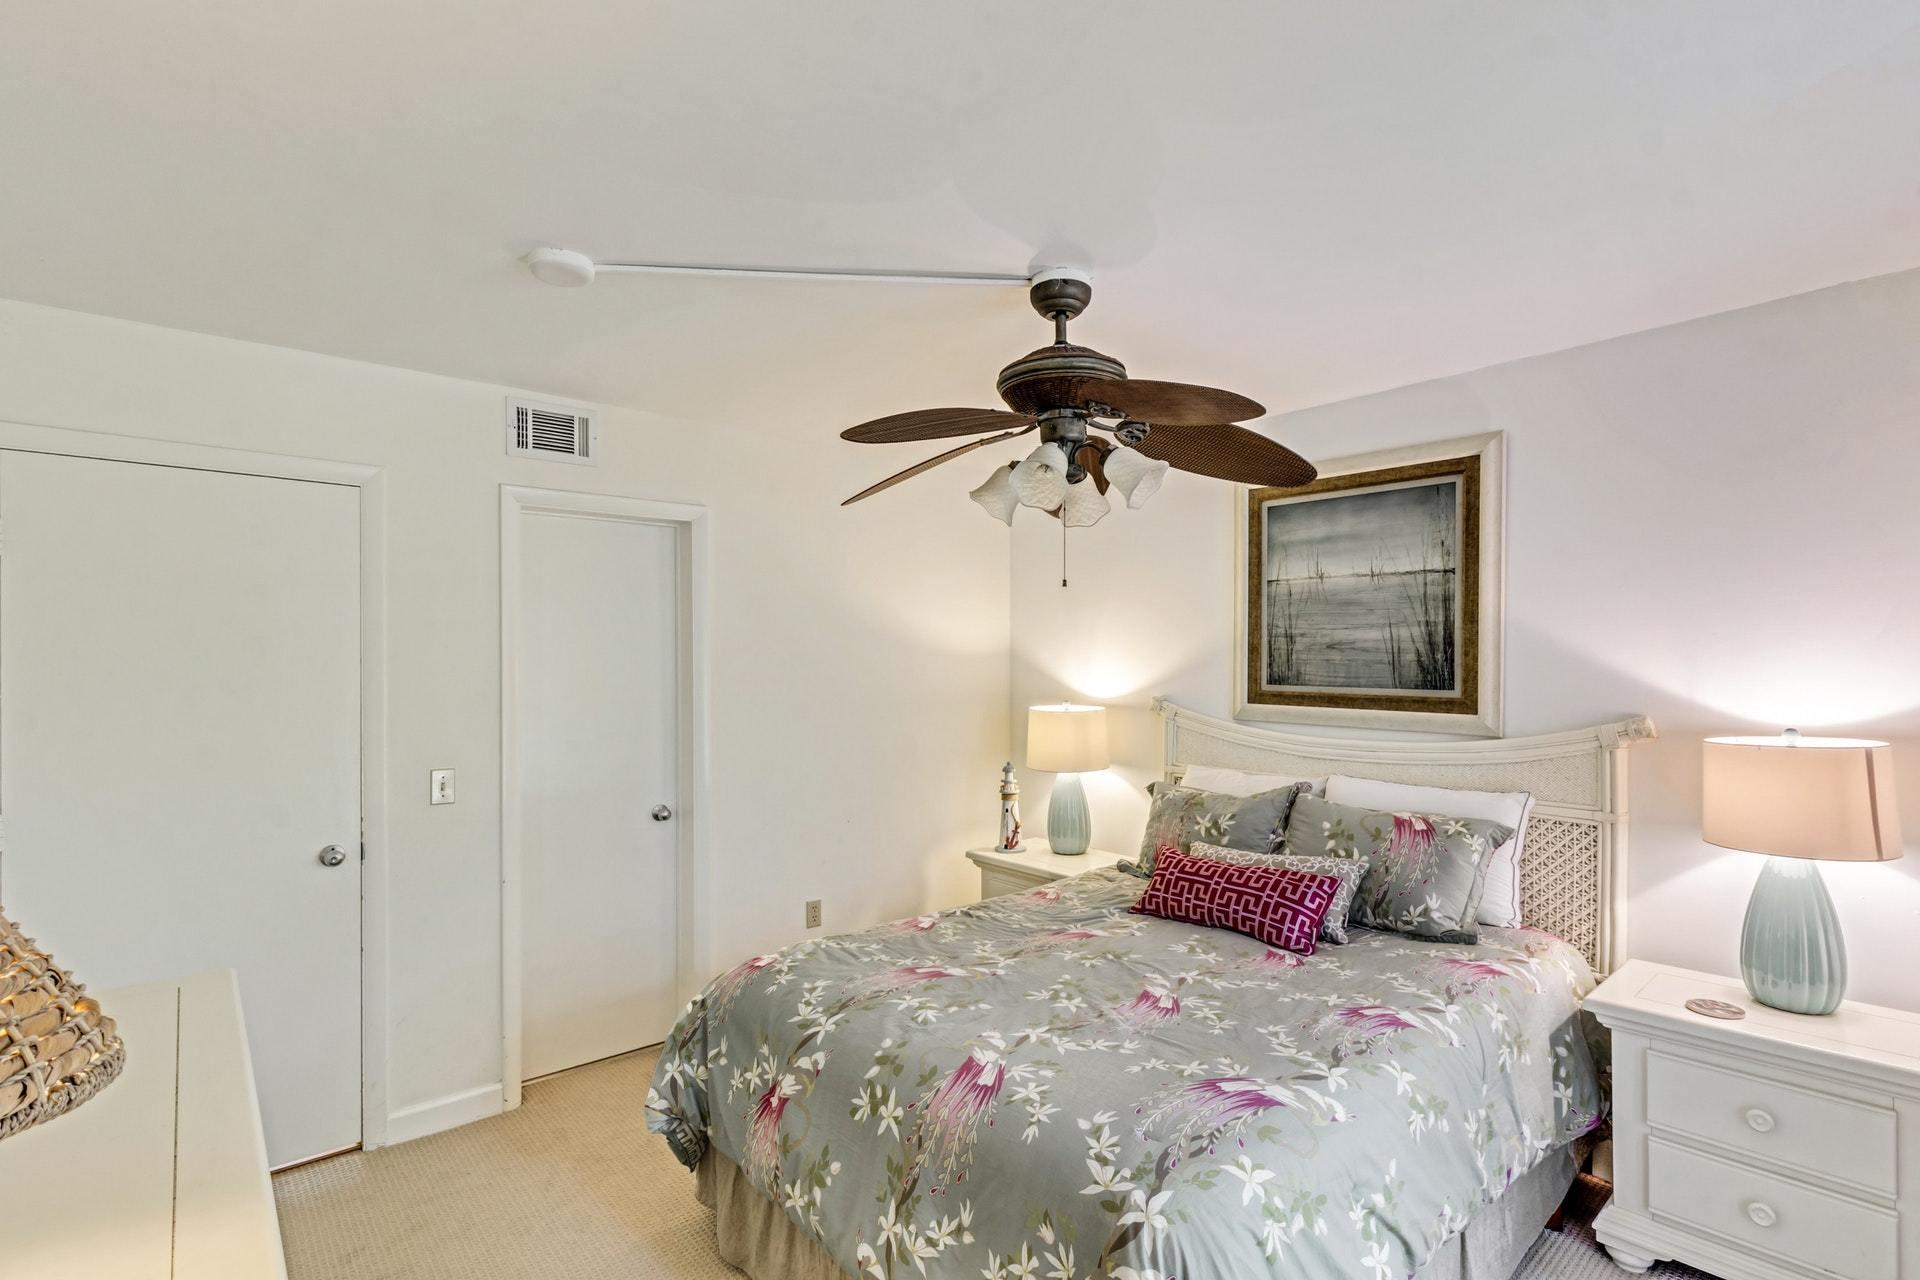 Wild Dunes Homes For Sale - 118 C Shipwatch, Isle of Palms, SC - 25